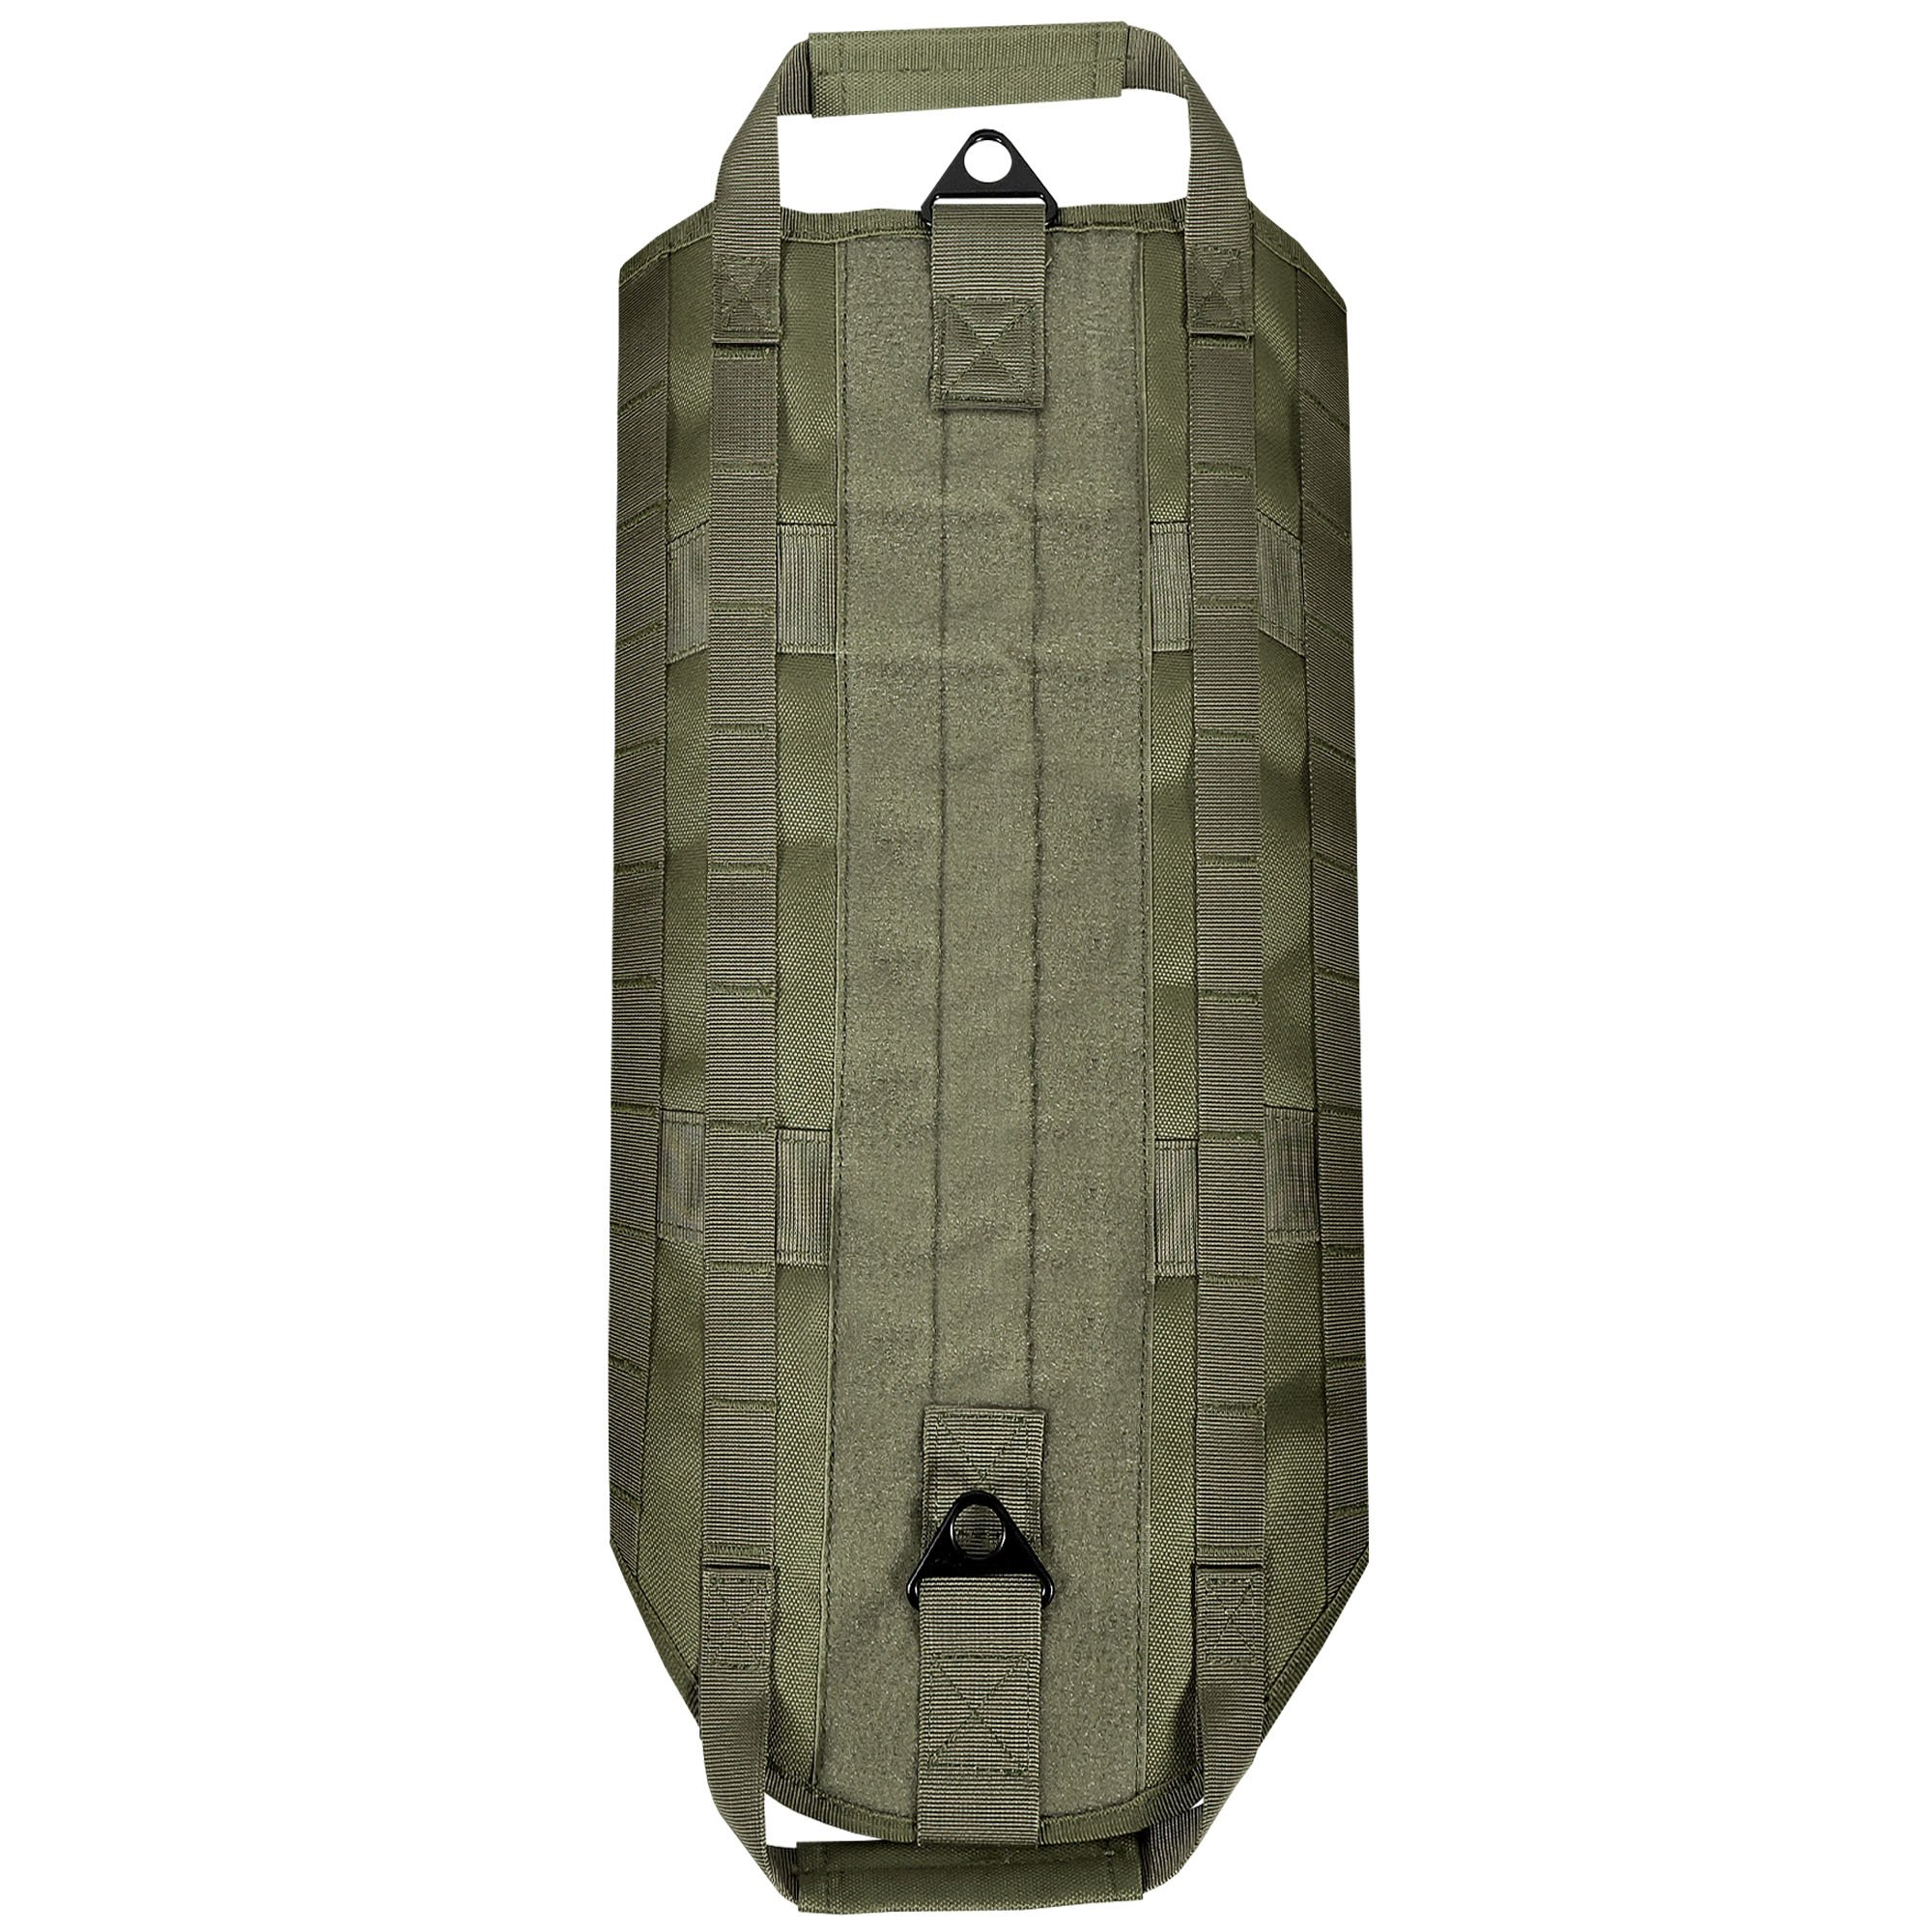 LIVABIT [ OD Green Canine Service Dog Tactical Molle Vest Harness Large by LIVABIT